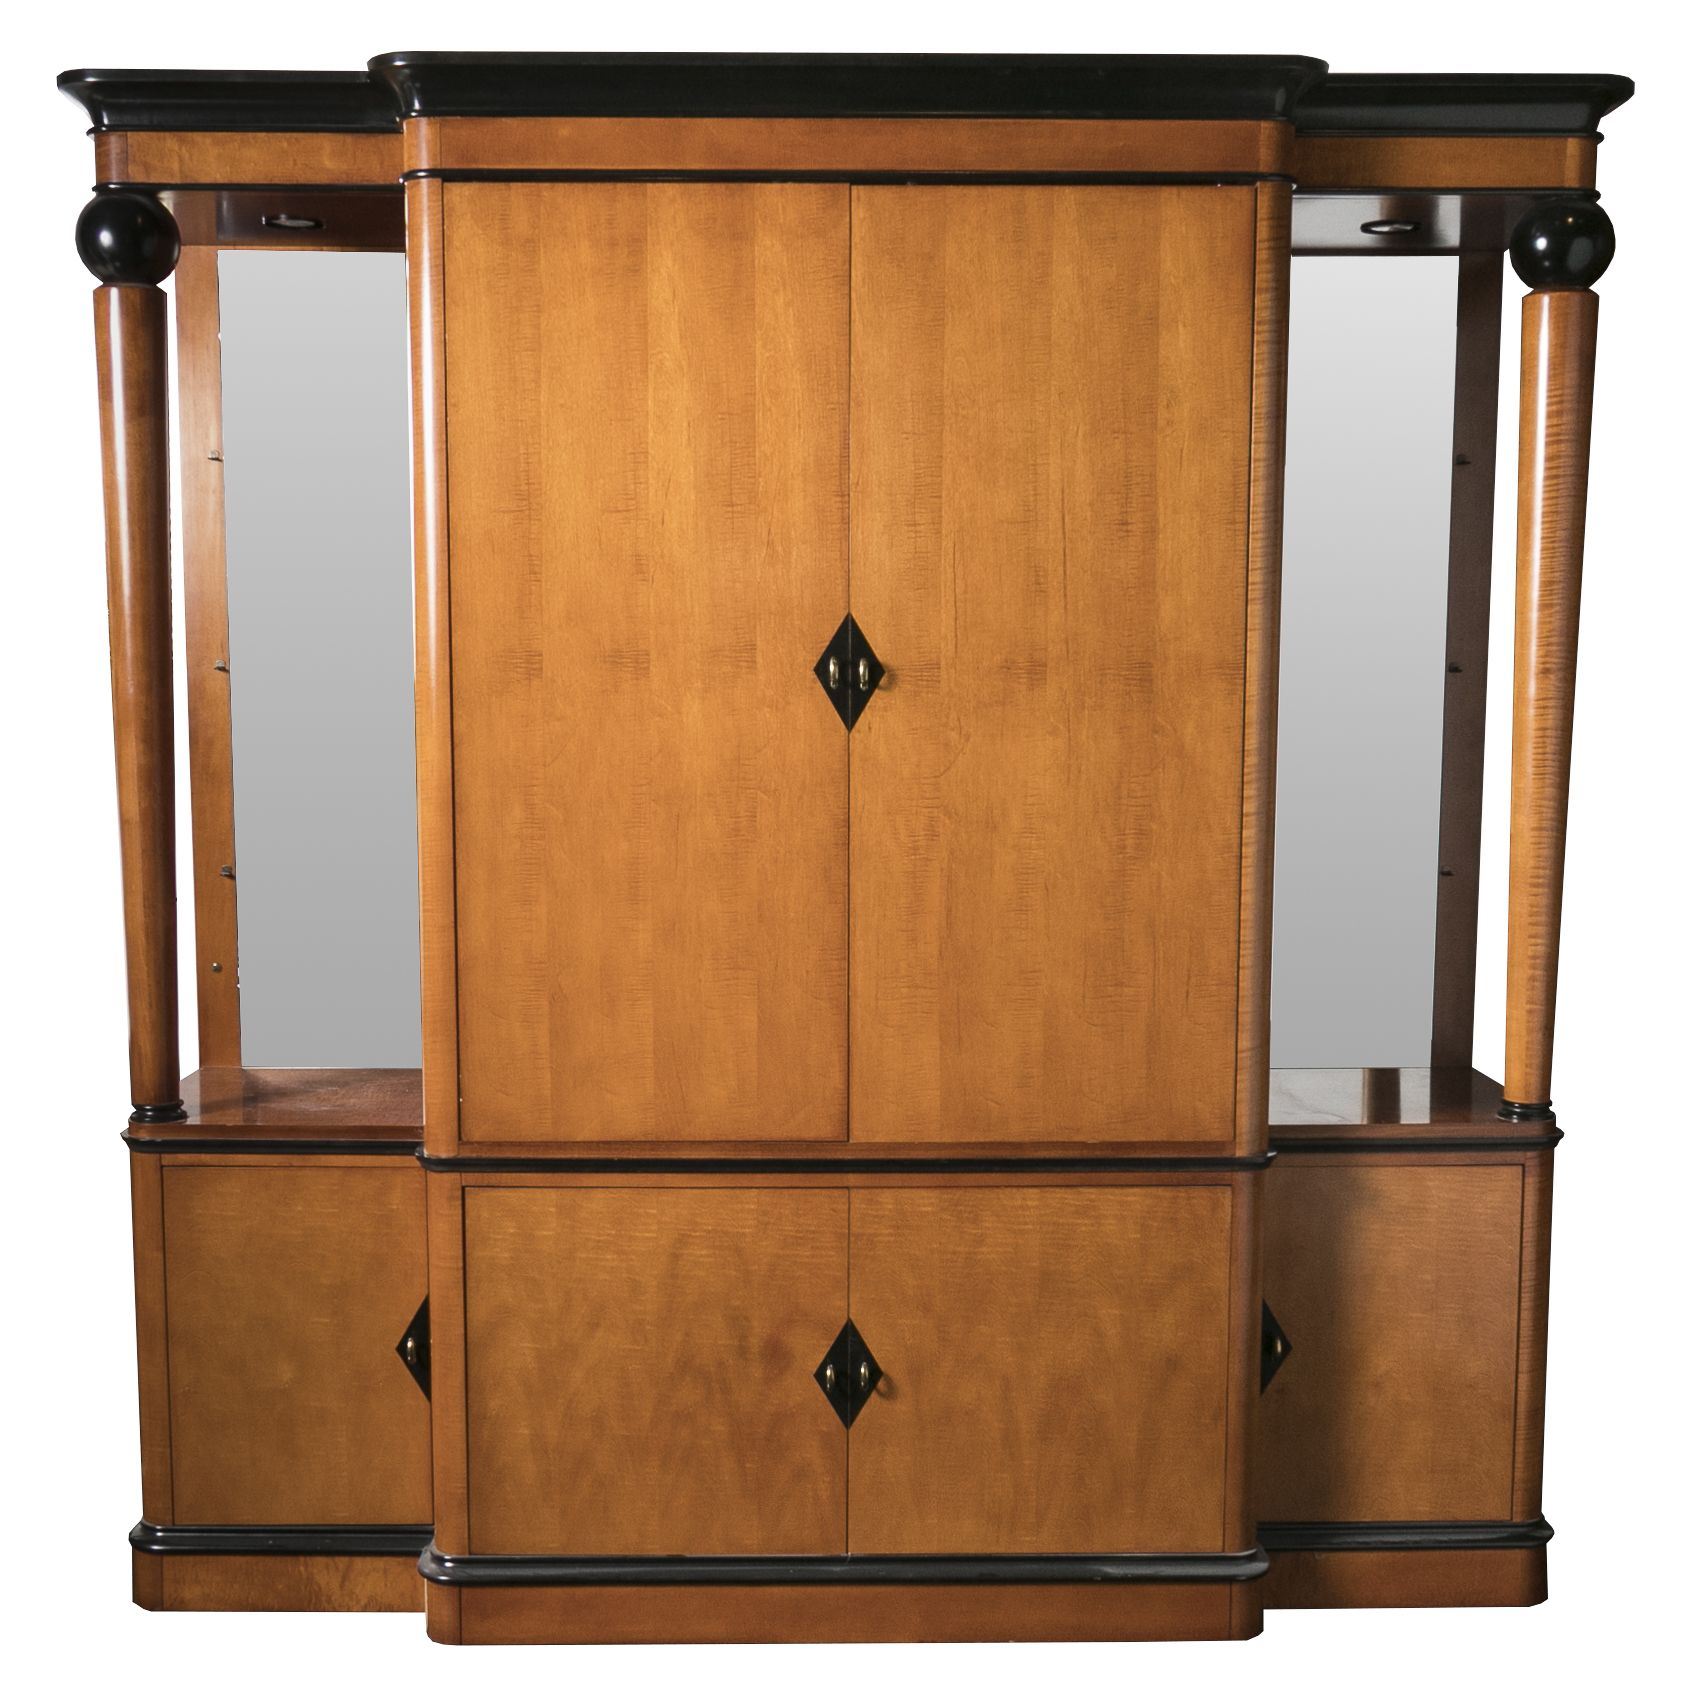 Superbe The Best Selection Of Consignment Furniture In Columbus, Ohio. Shop Our  Gently Used Furniture; Antique, Vintage, And Previously Owned Furniture;